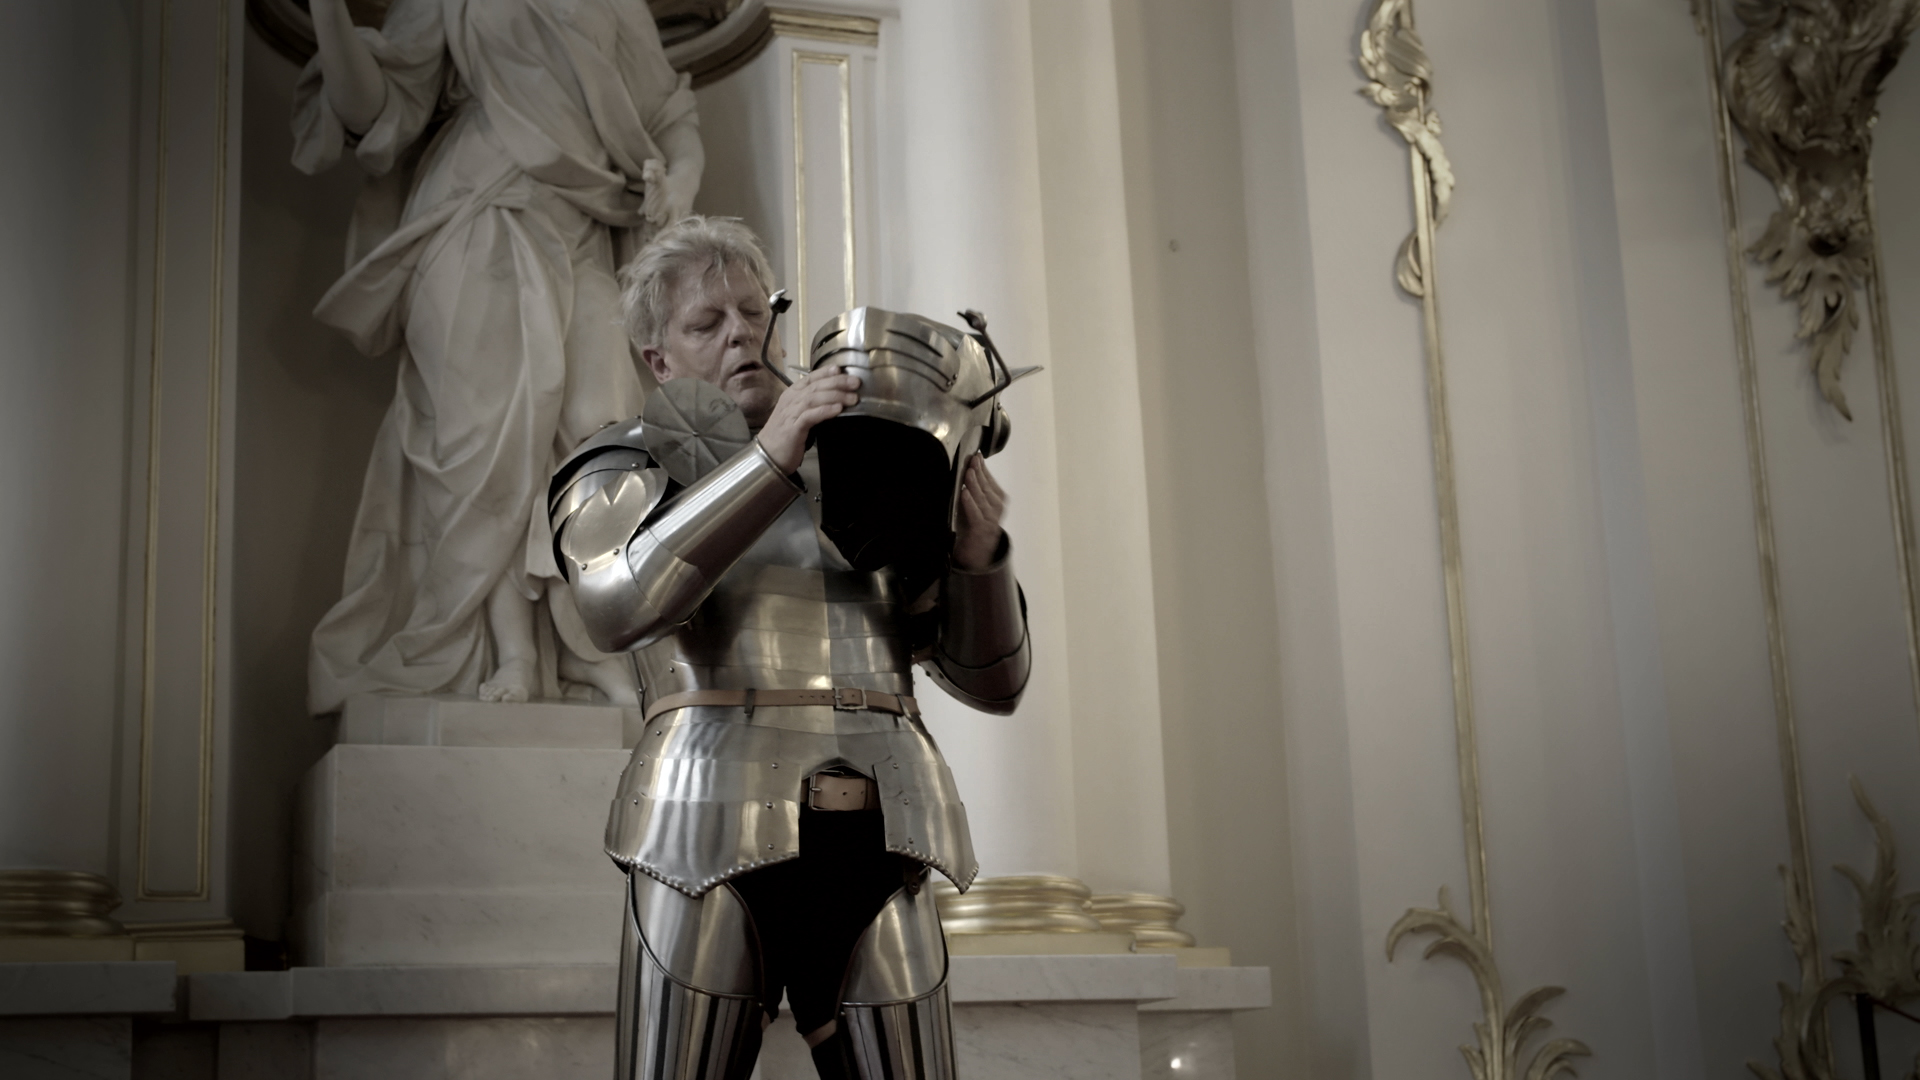 Fabre at the Hermitage_VI.00_00_42_00.Image fixe019.jpg